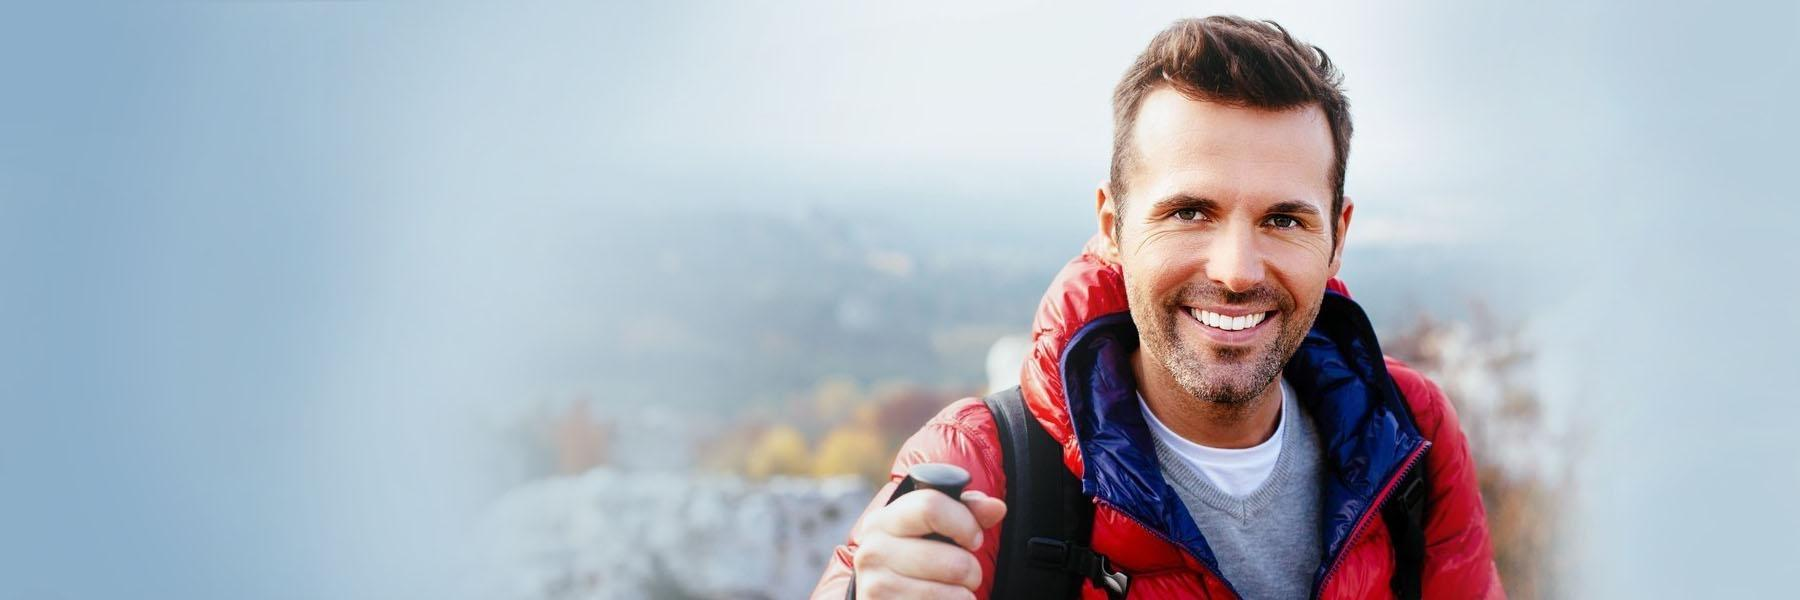 Man in red jacket smiling | Dentist Chesterfield MO